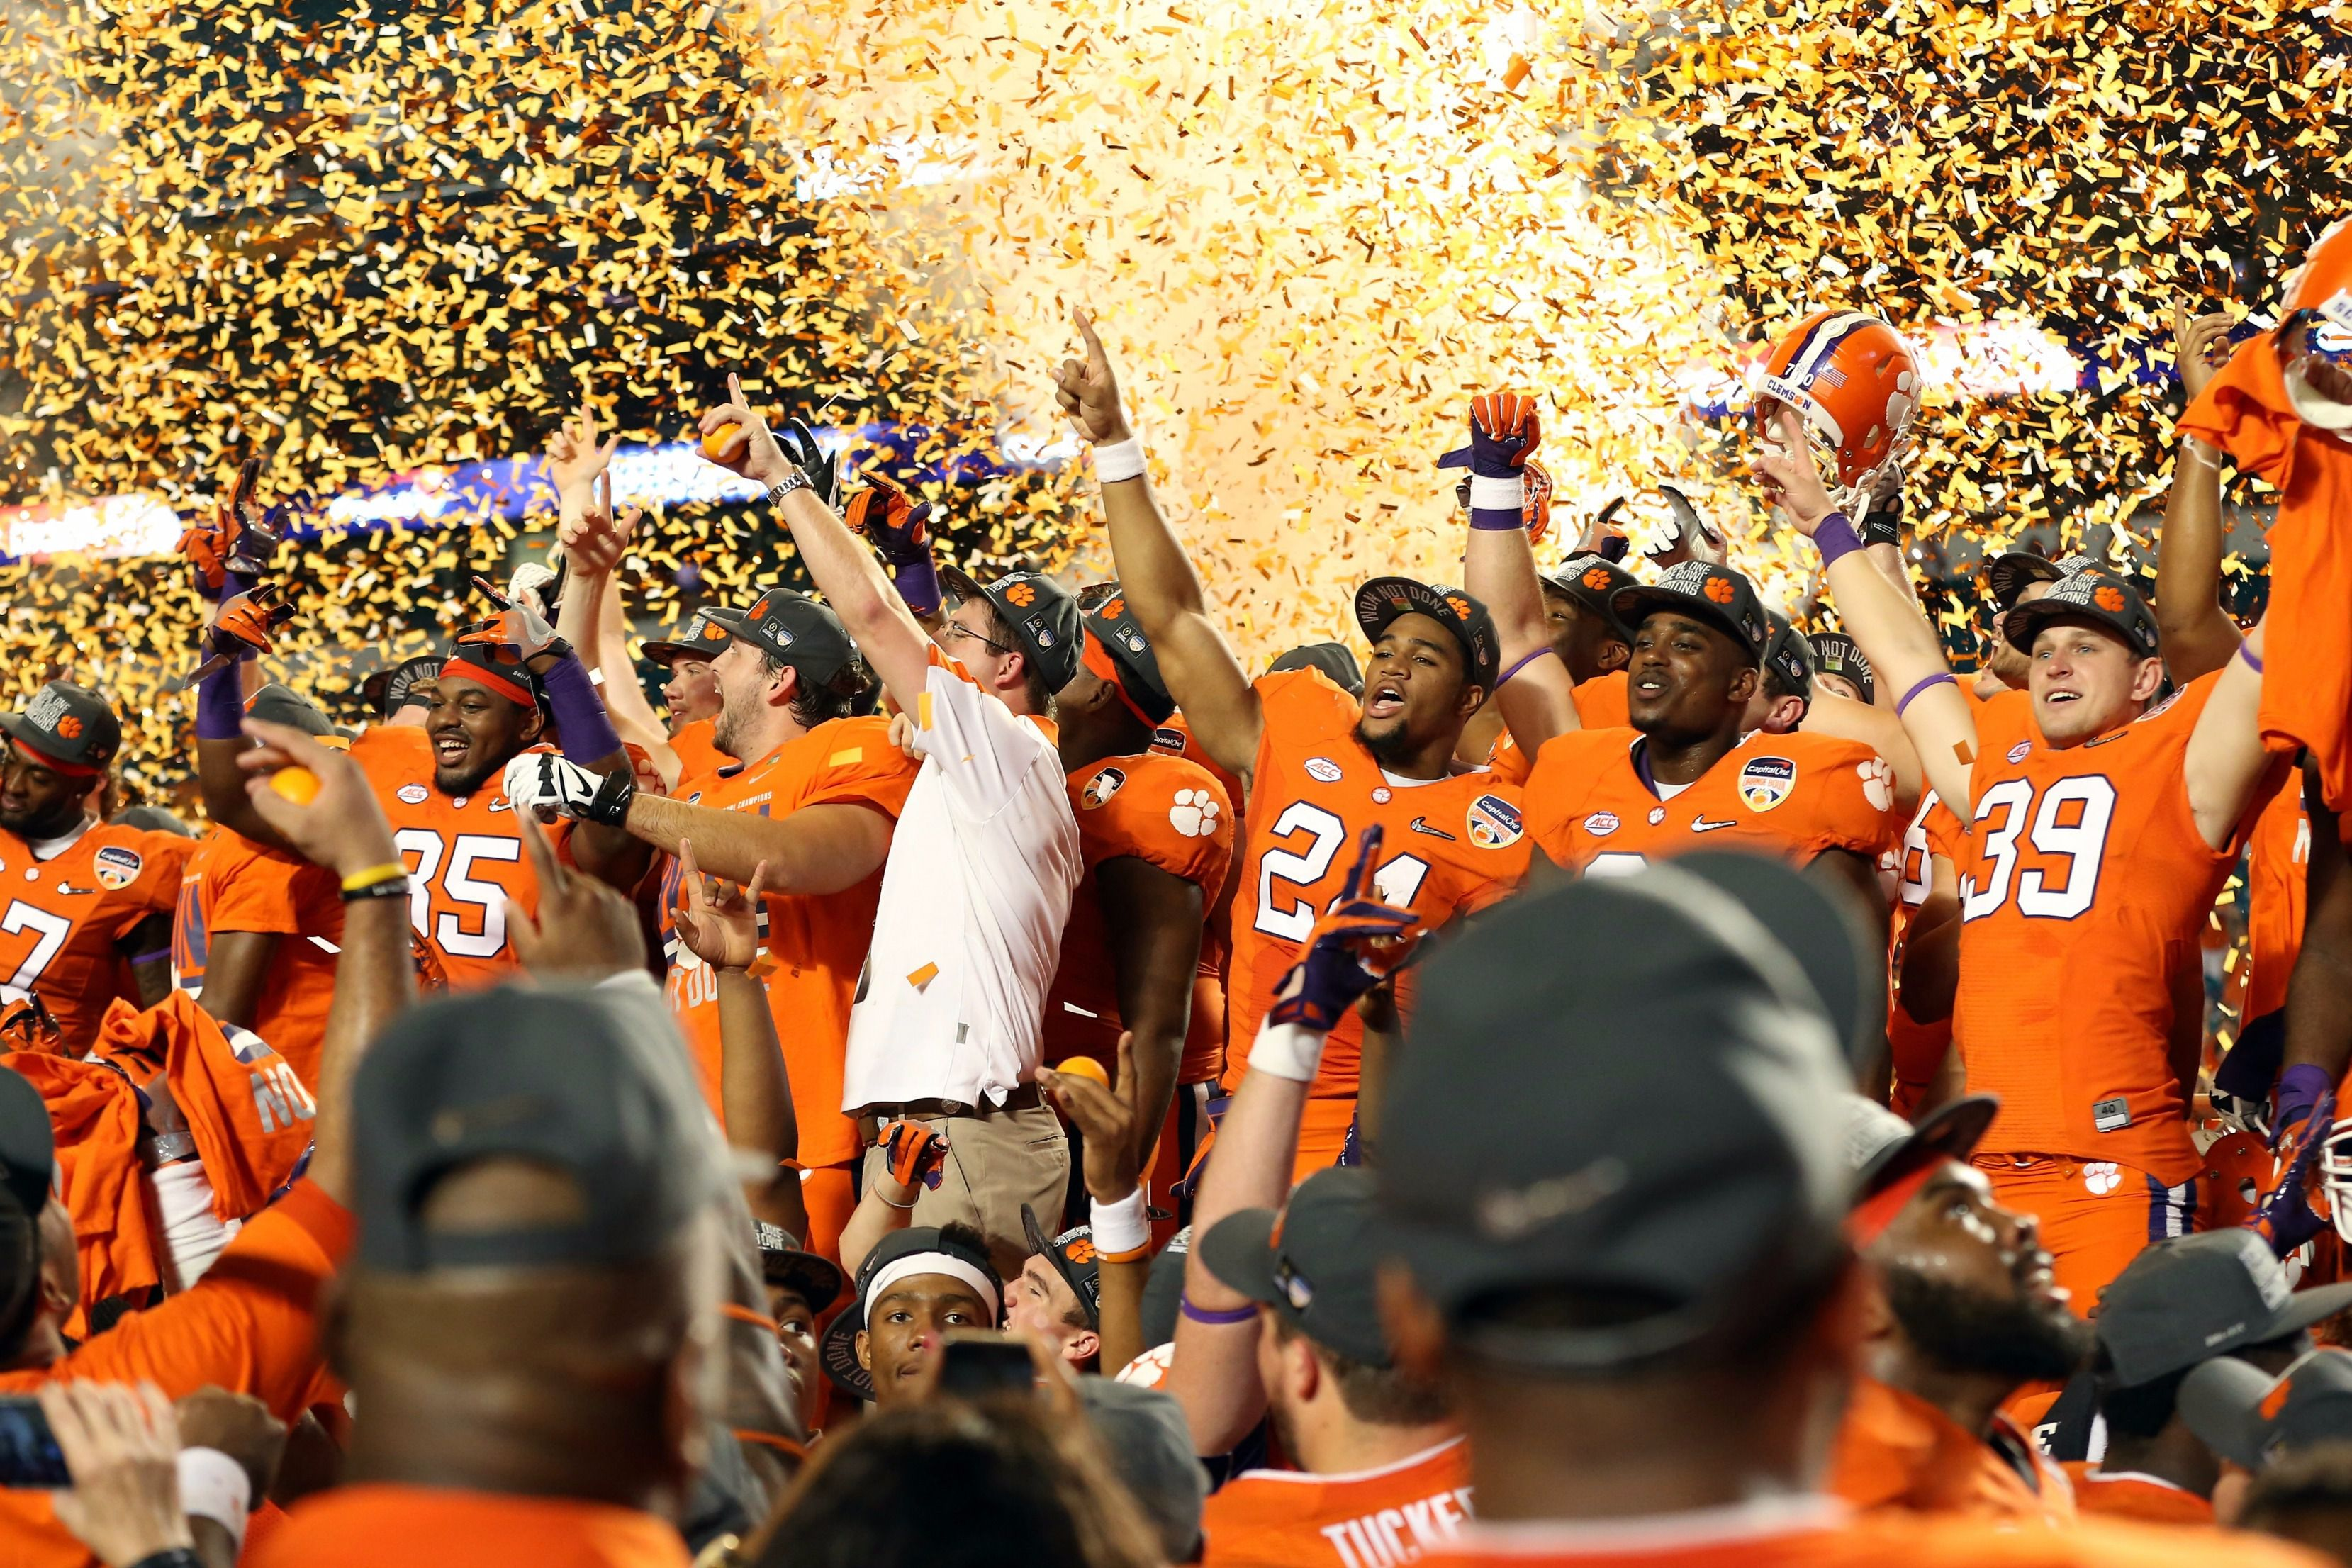 The Clemson Tigers